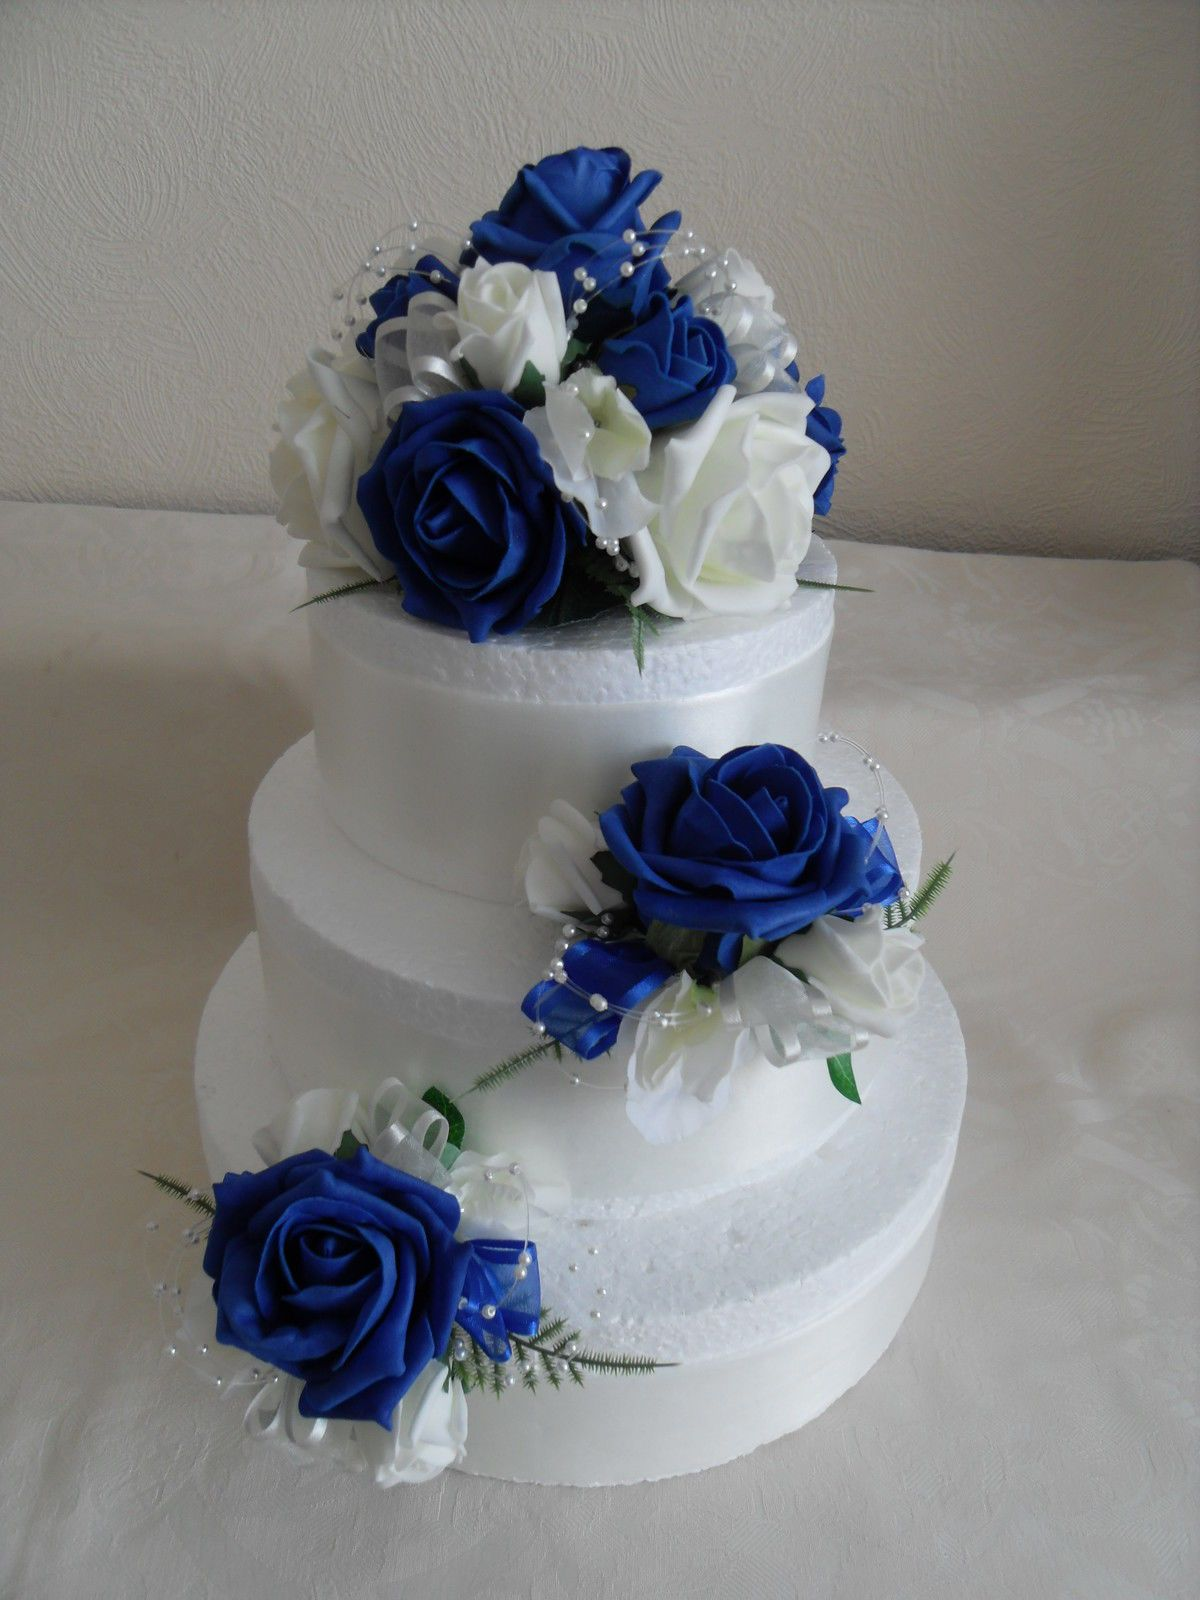 3 Artificial Silk Flower Wedding Cake Toppers In Colourfast Royal